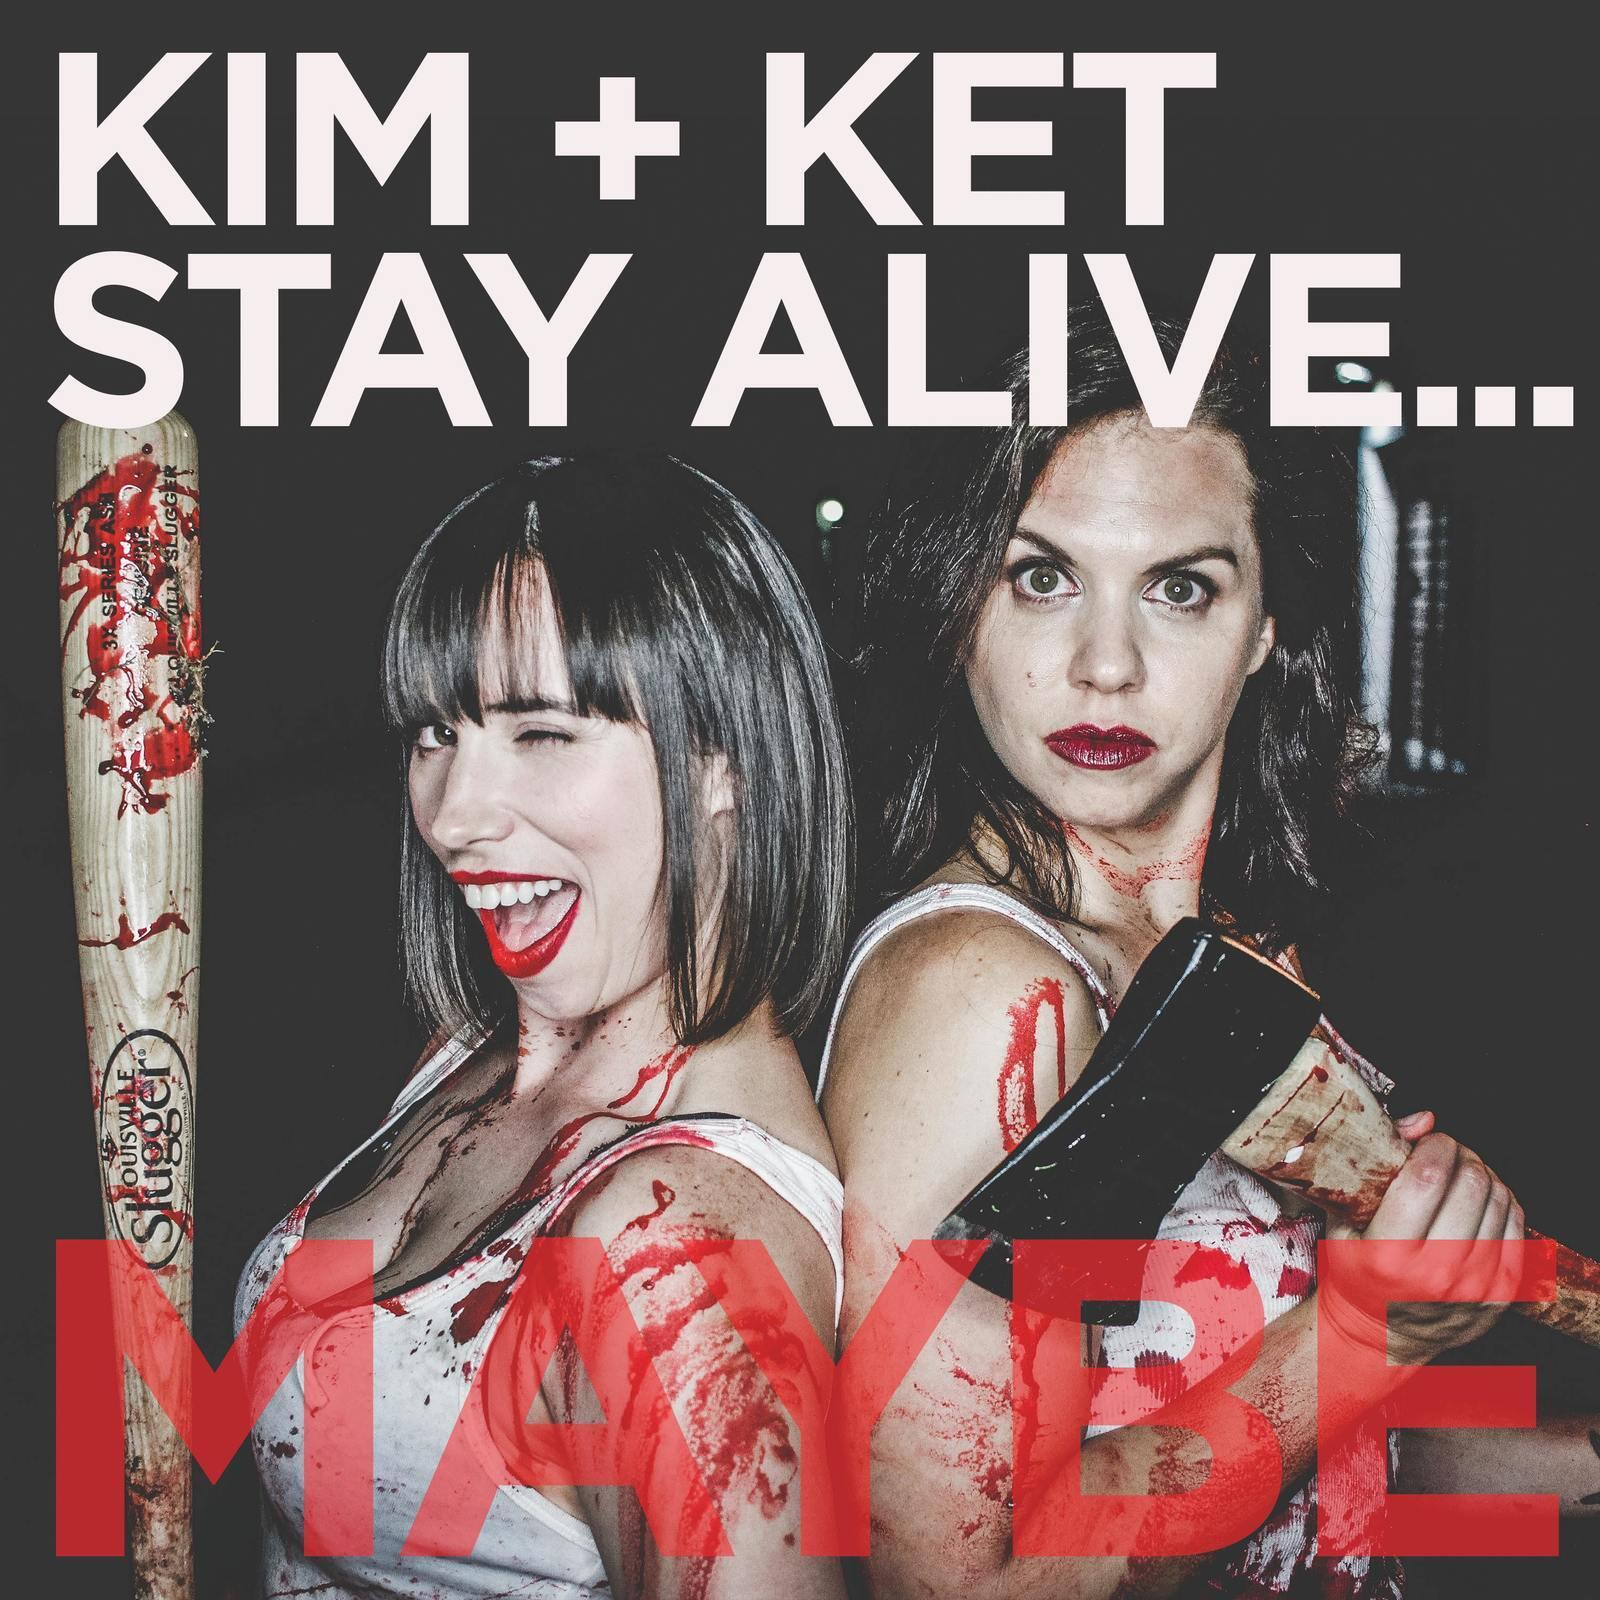 Nadia hilker tits and ass Kim And Ket Stay Alive Maybe Podcast Addict